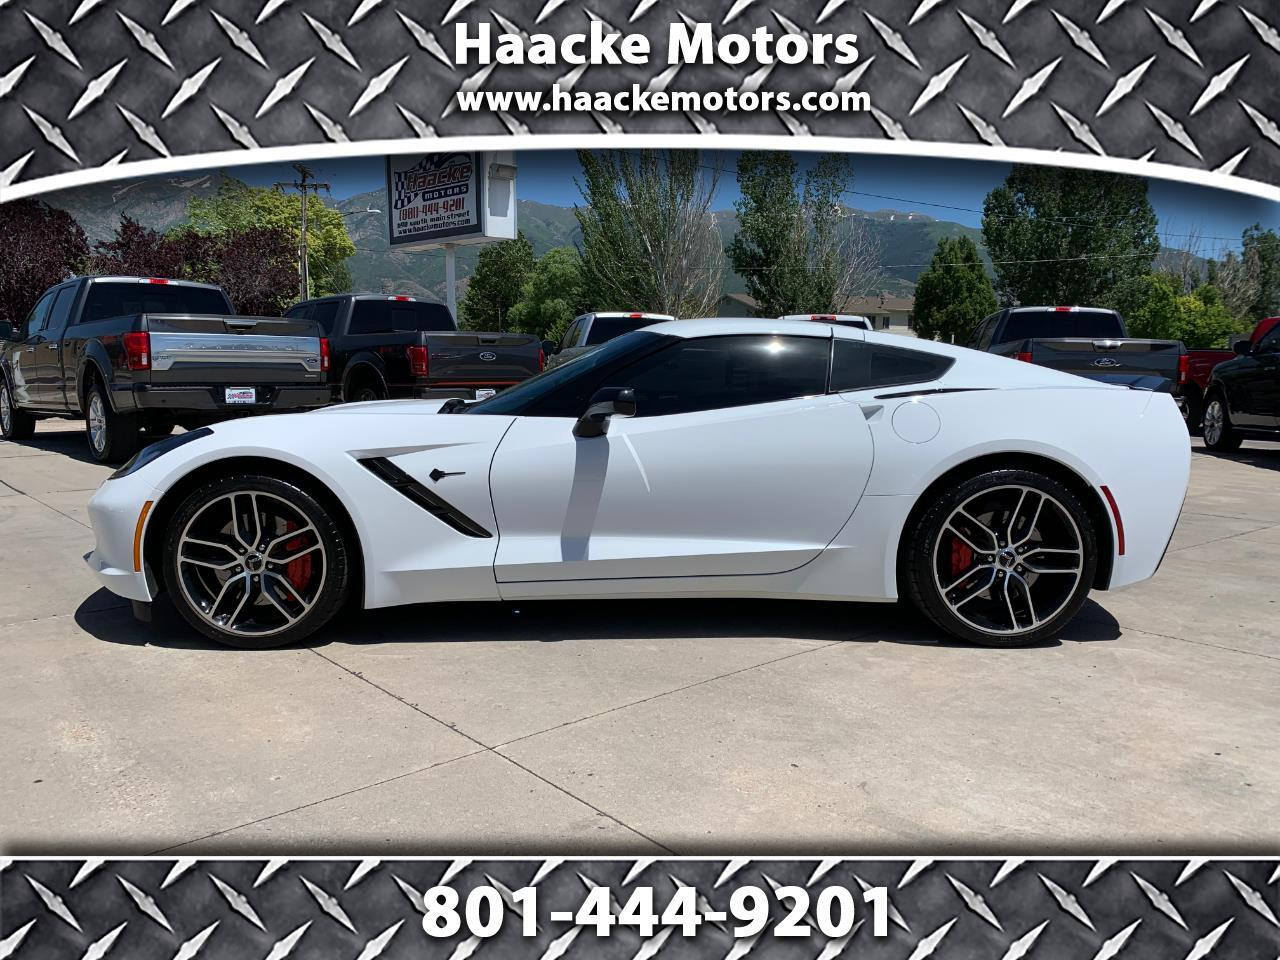 2015 Chevrolet Corvette 2dr Stingray Z51 Cpe w/3LT